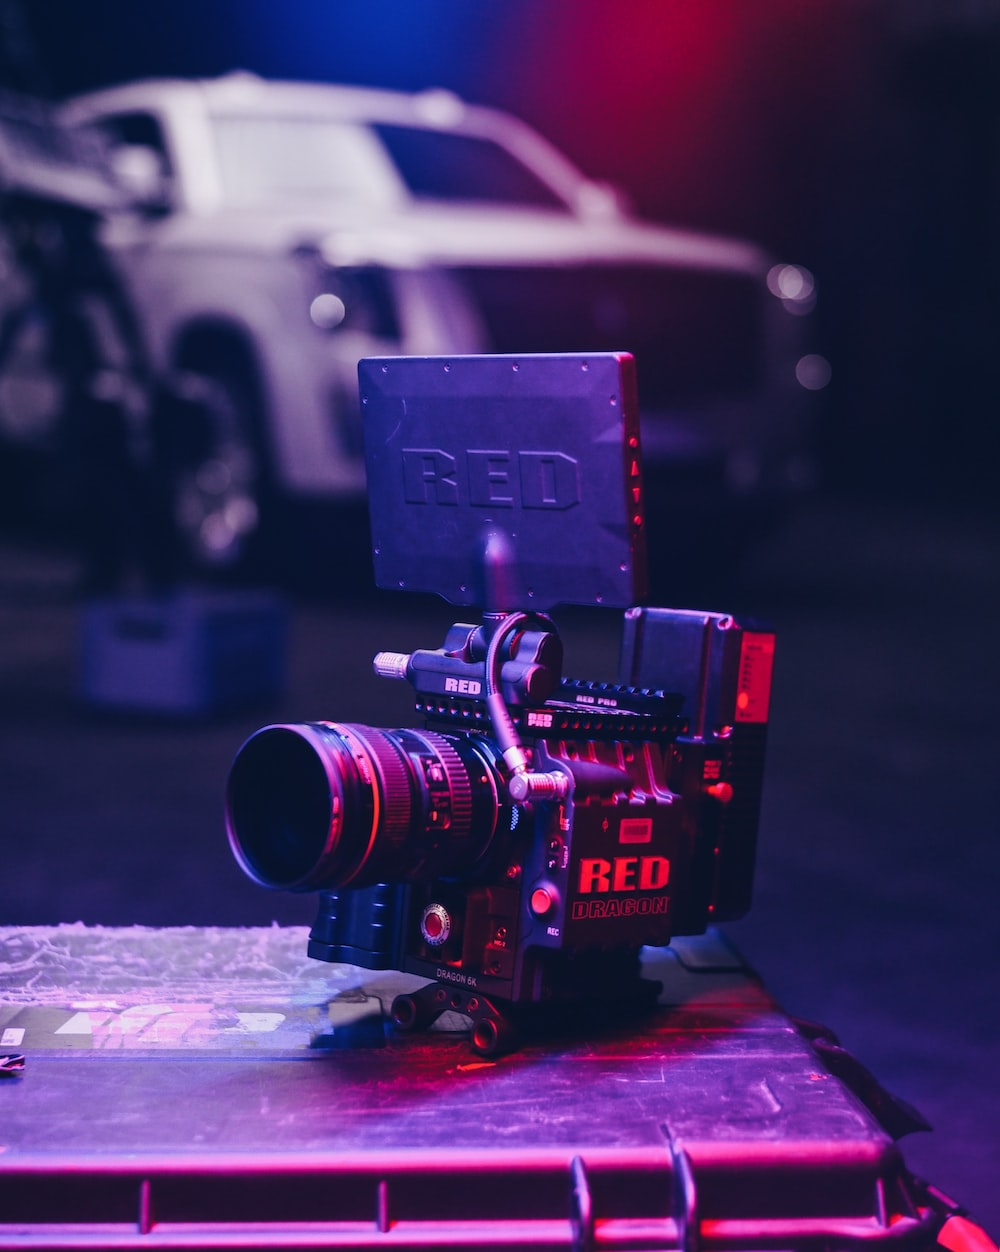 black camera with RED case